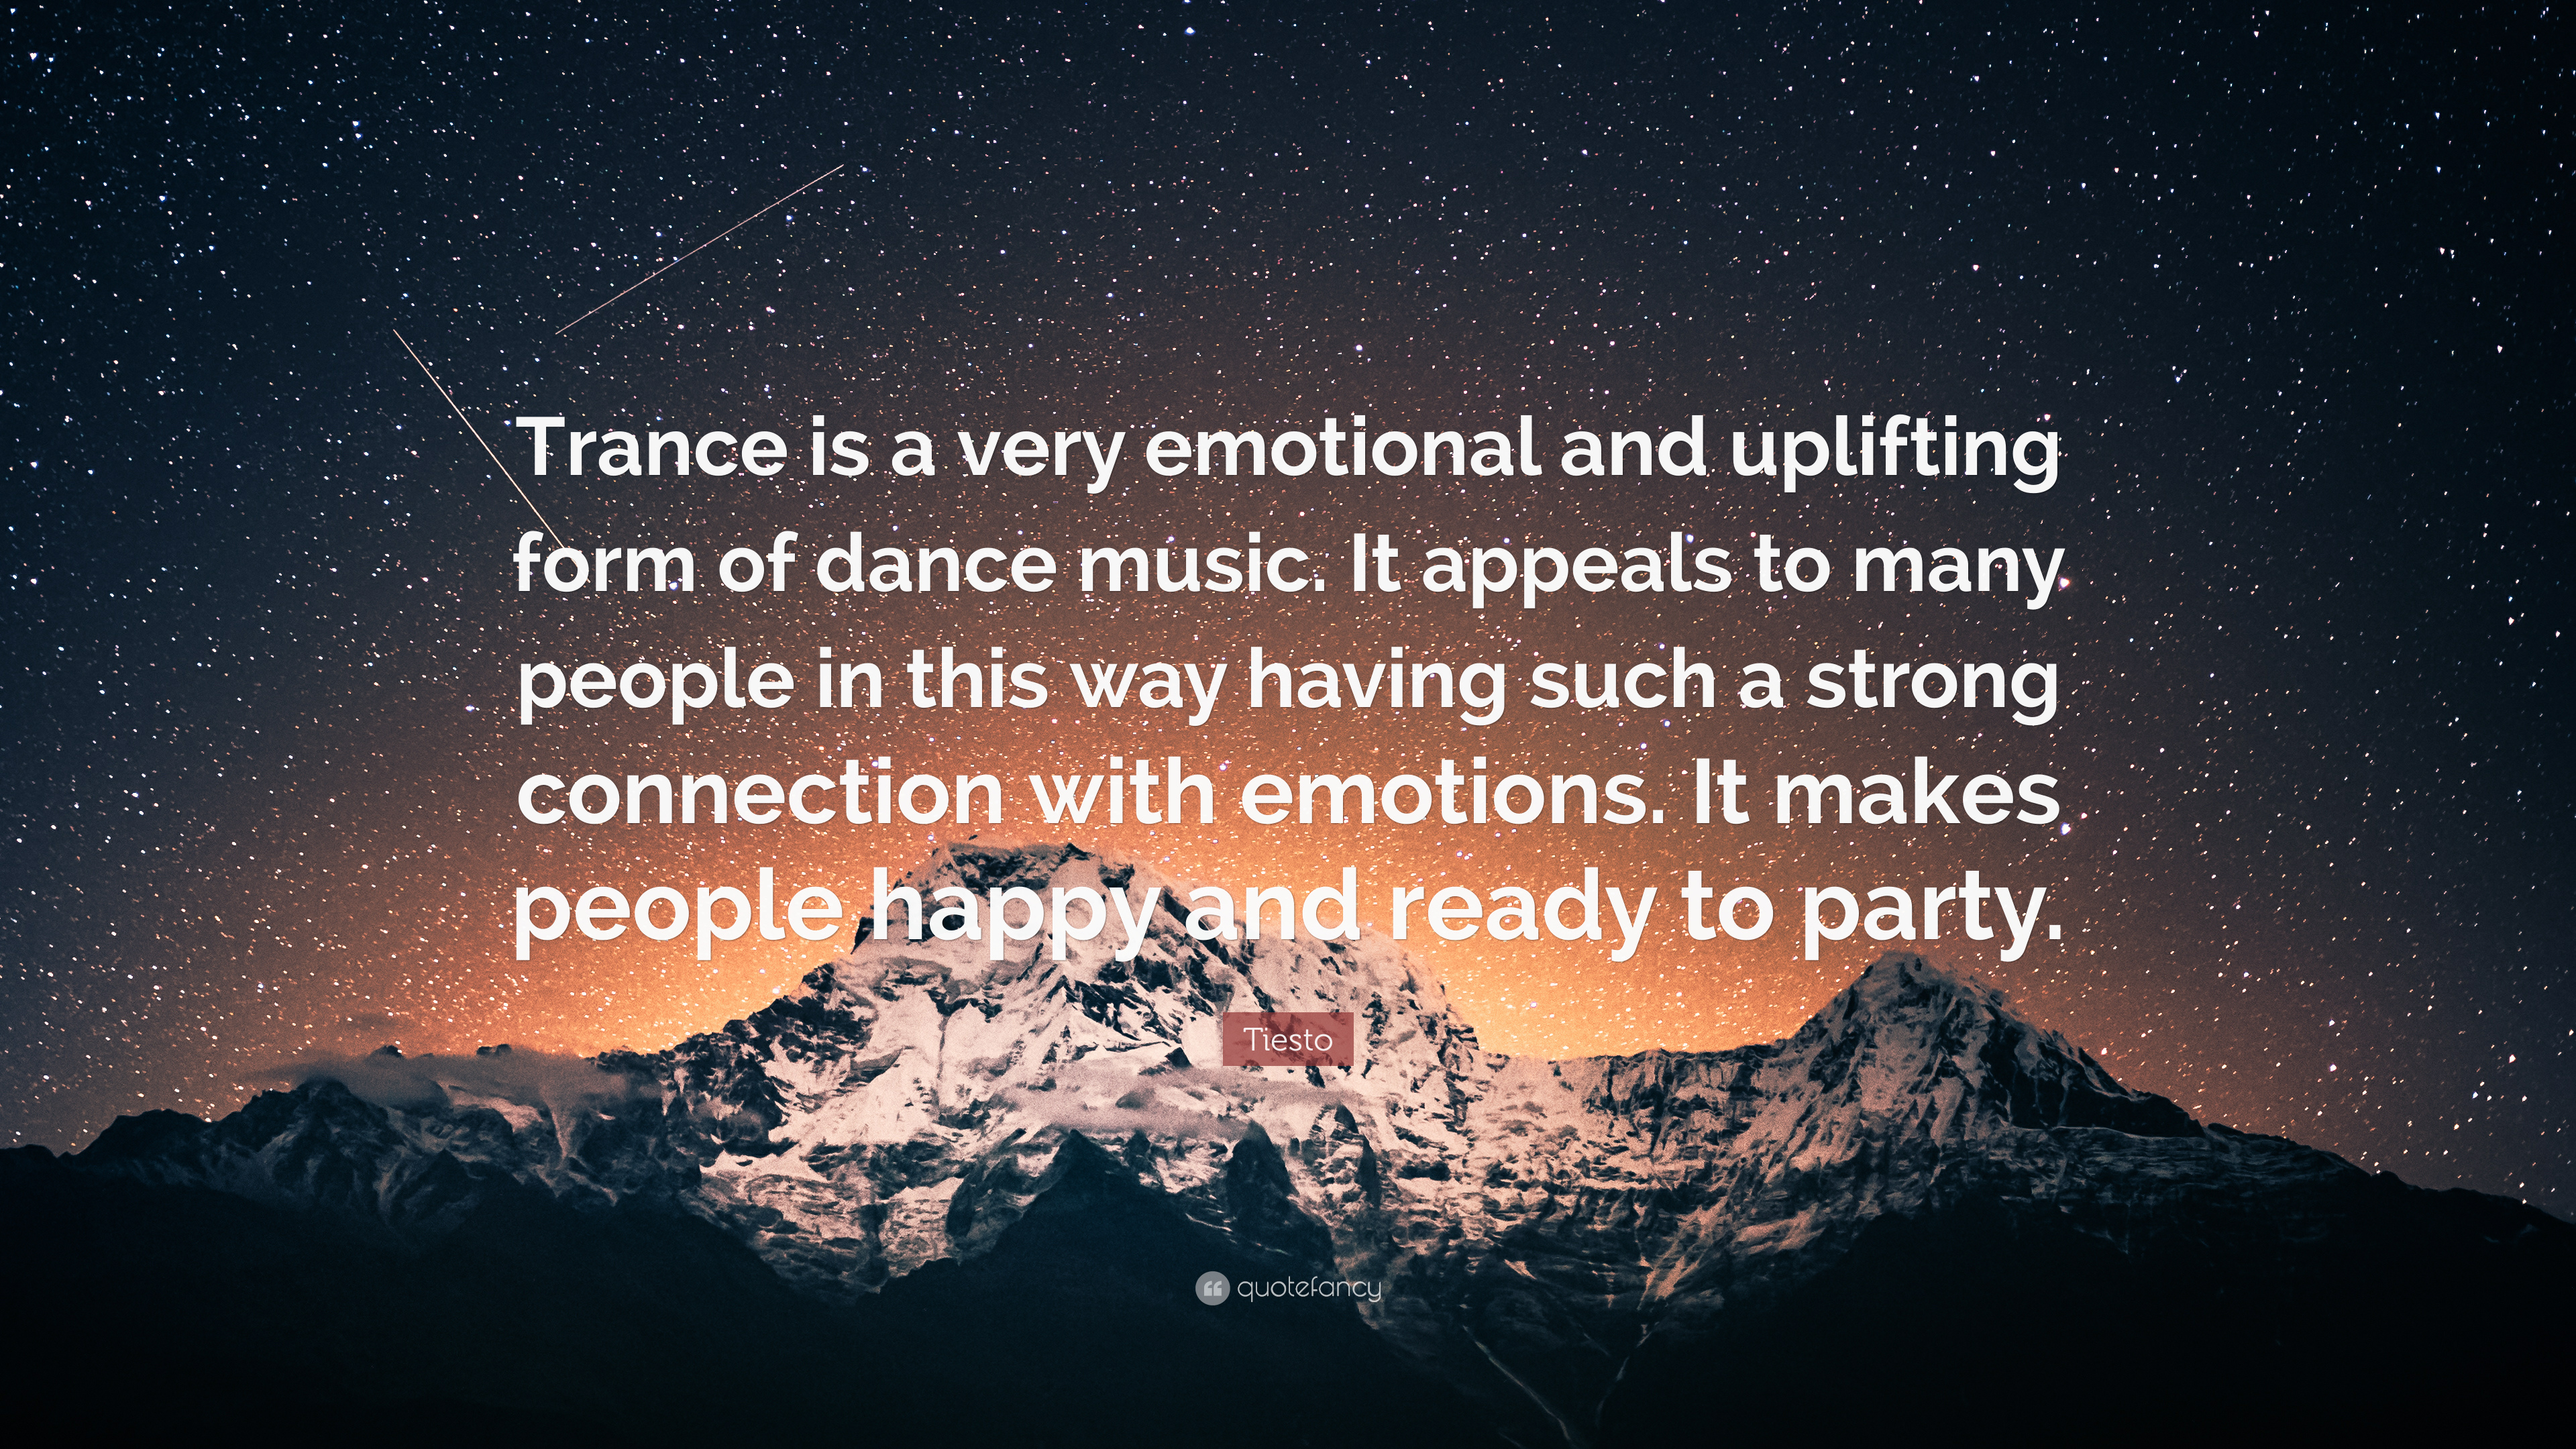 tiesto quote trance is a very emotional and uplifting form of